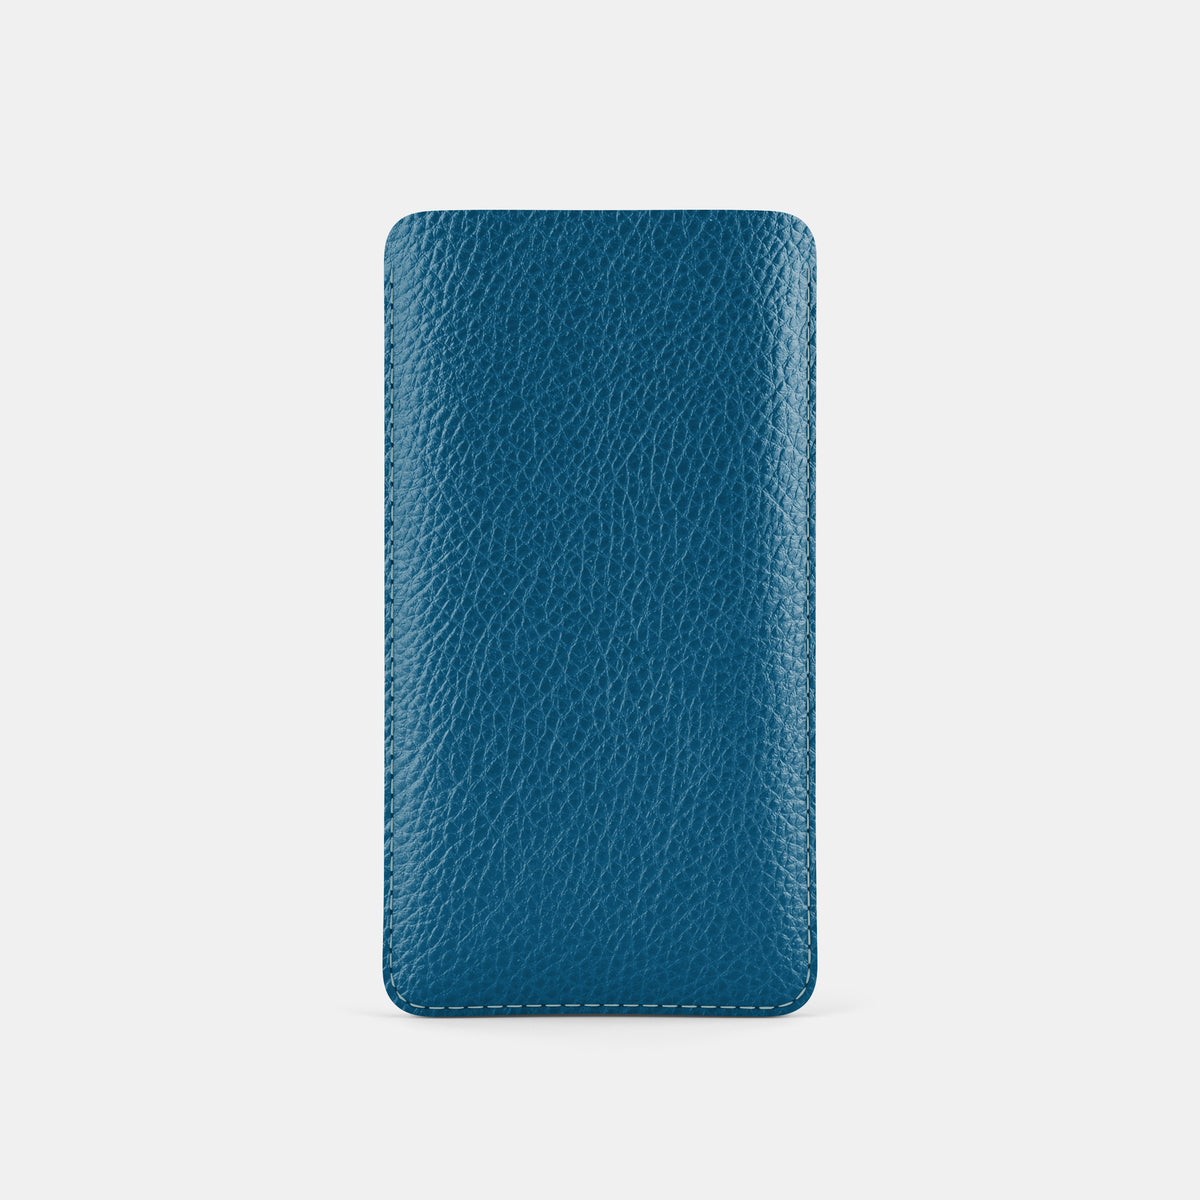 Phone Sleeve - Turquoise and Orange - RYAN London